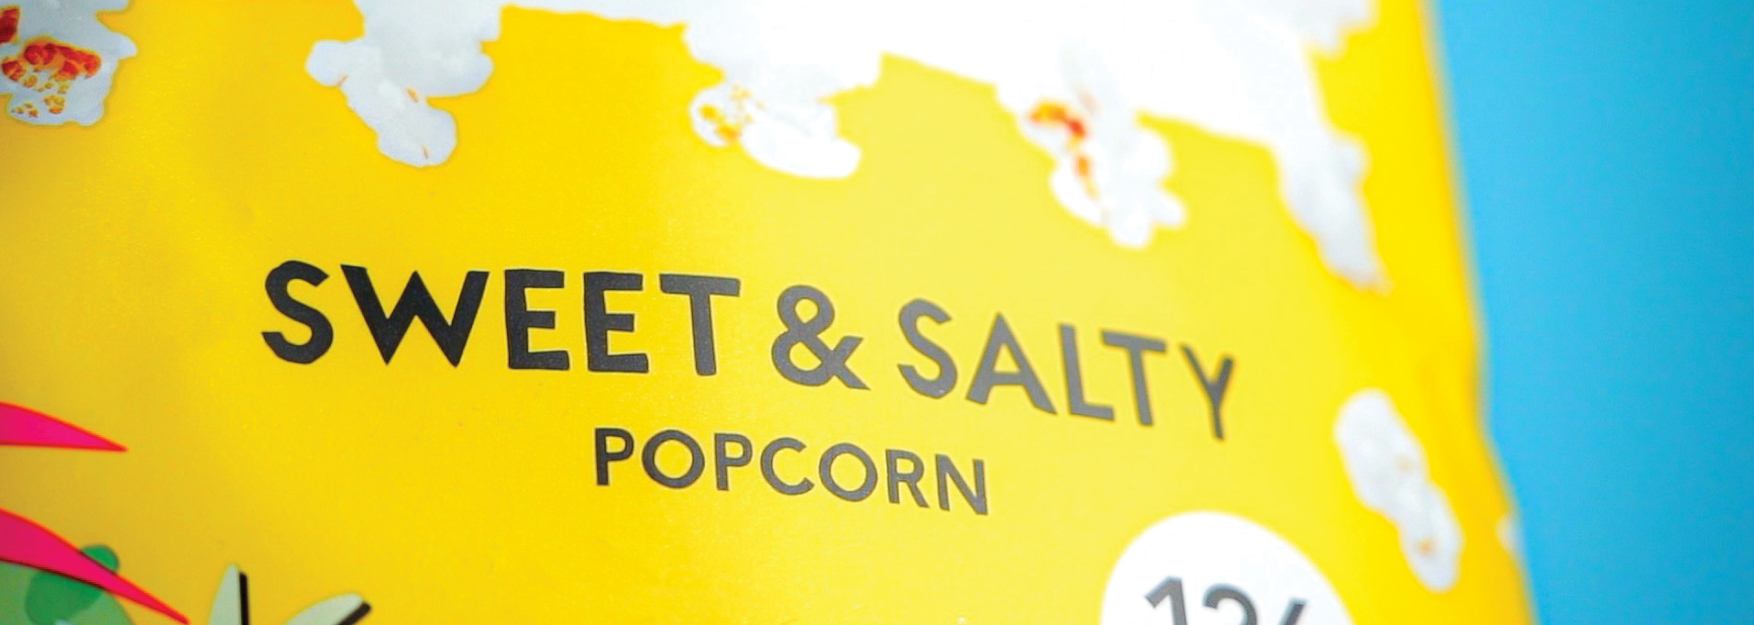 propercorn-sweet-salty